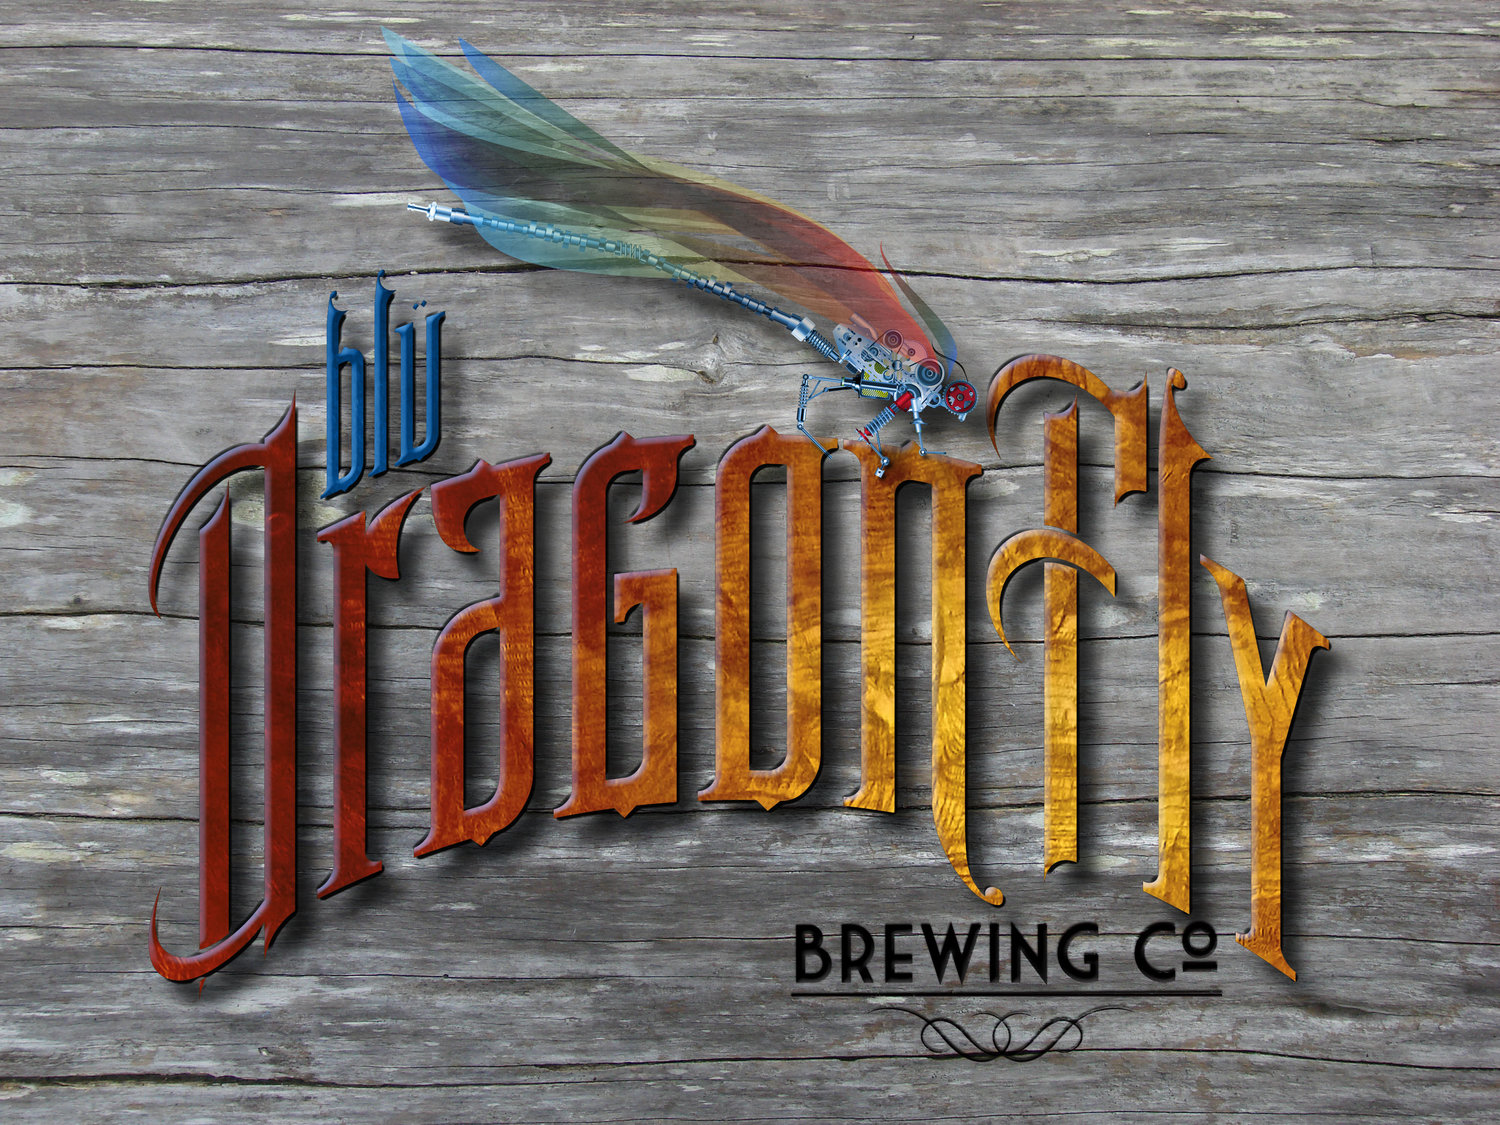 Blü Dragonfly Brewing